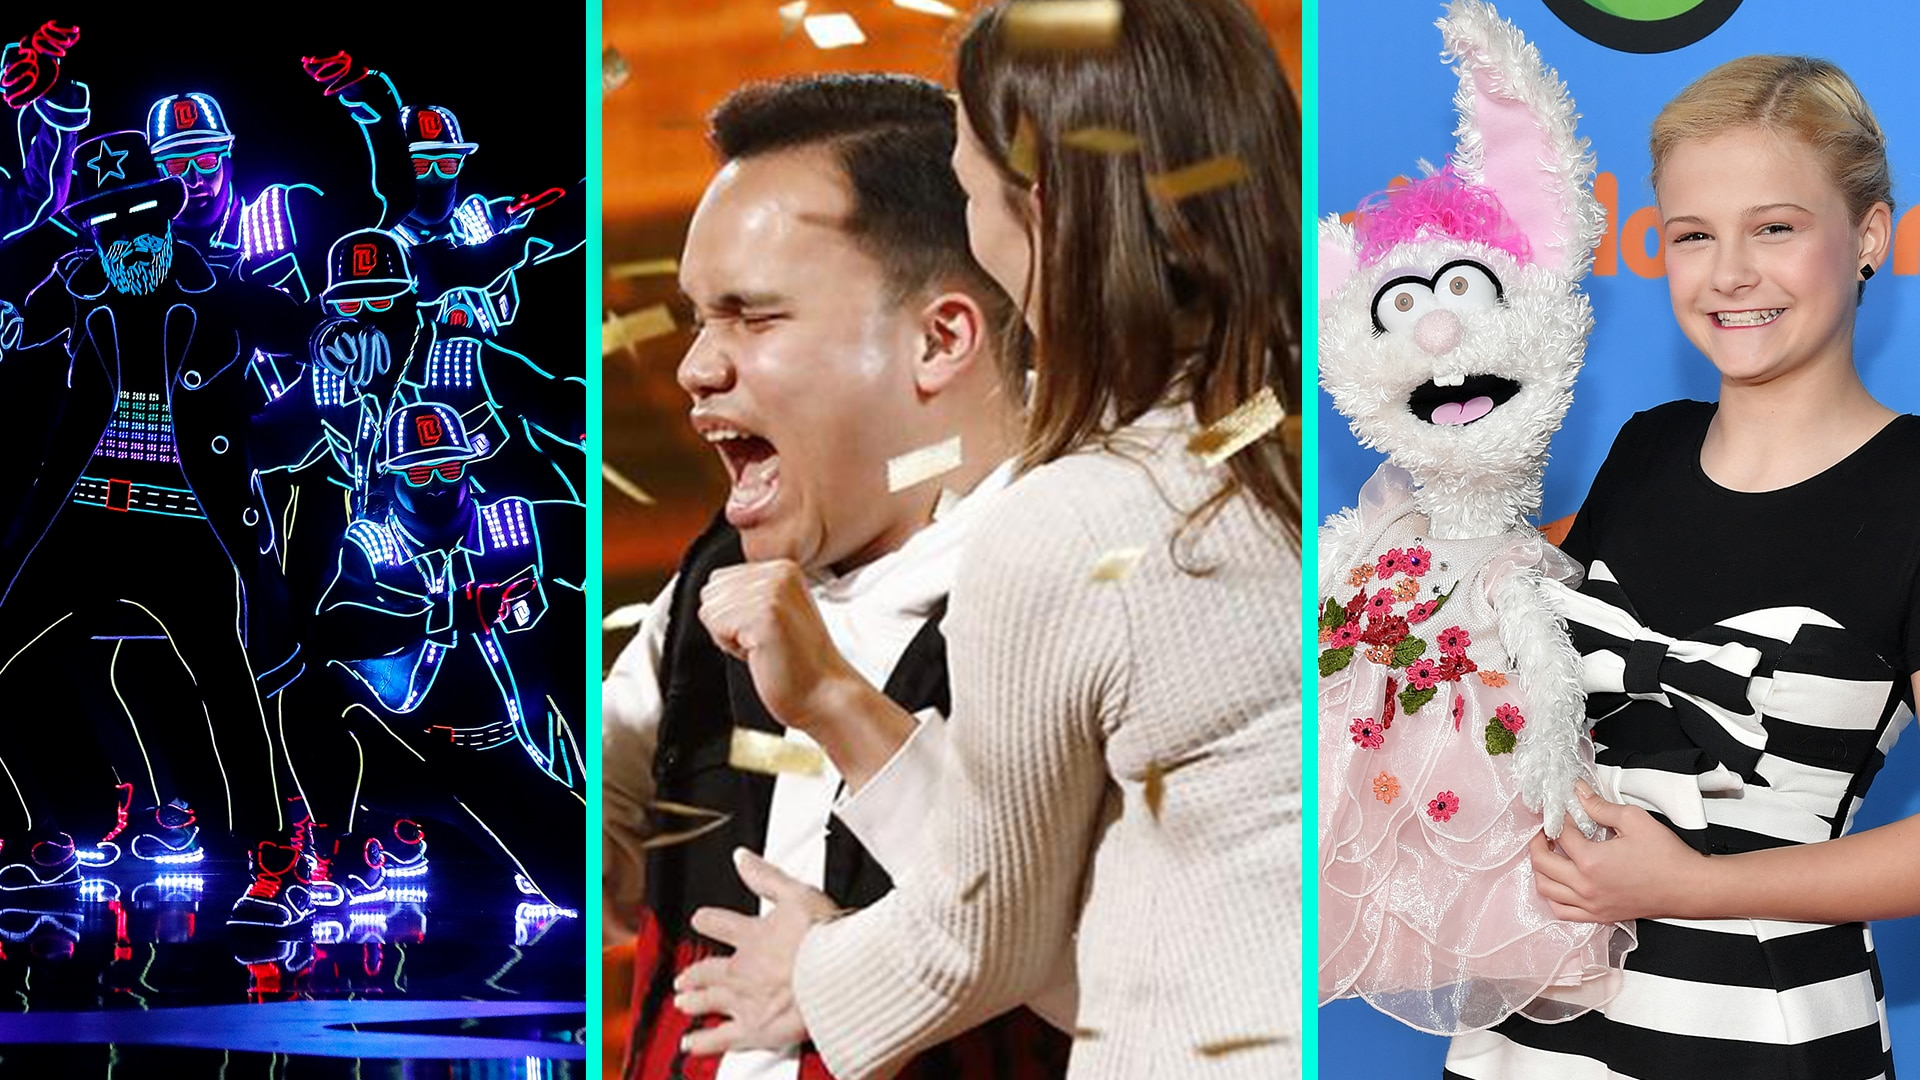 WATCH The Most Memorable Kids This Season On Americas